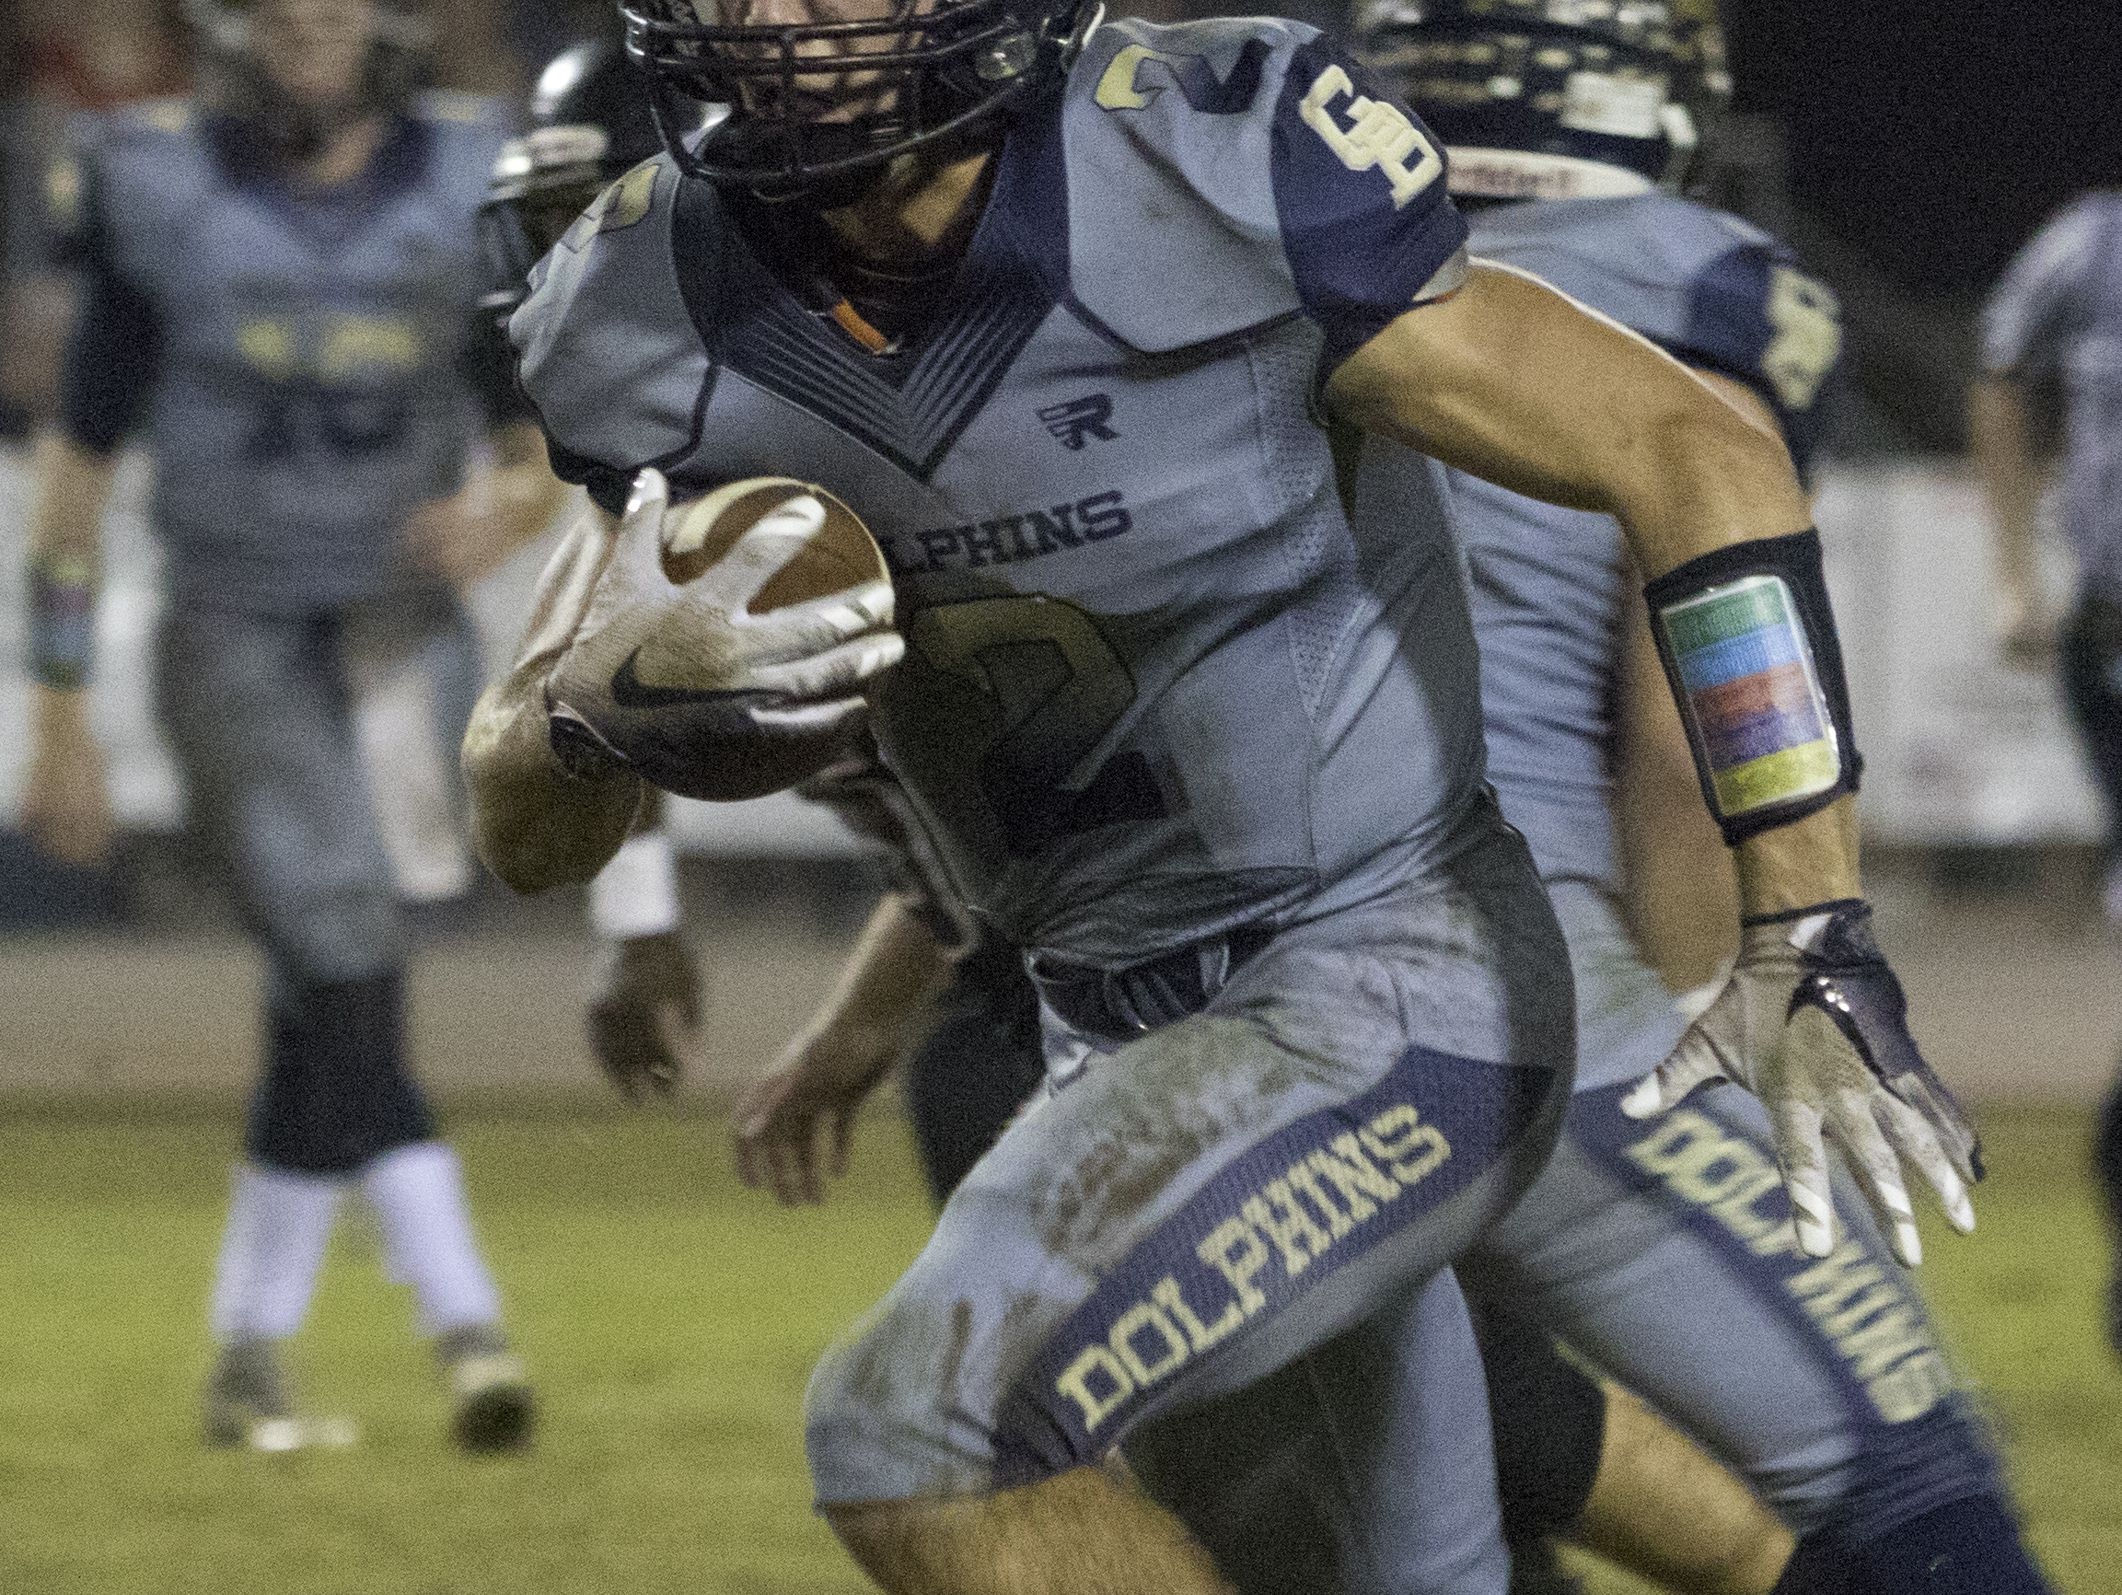 Tristan Covell (2) runs with the ball during the Gulf Breeze vs Navarre football at Navarre High School on Friday, October 8, 2016.